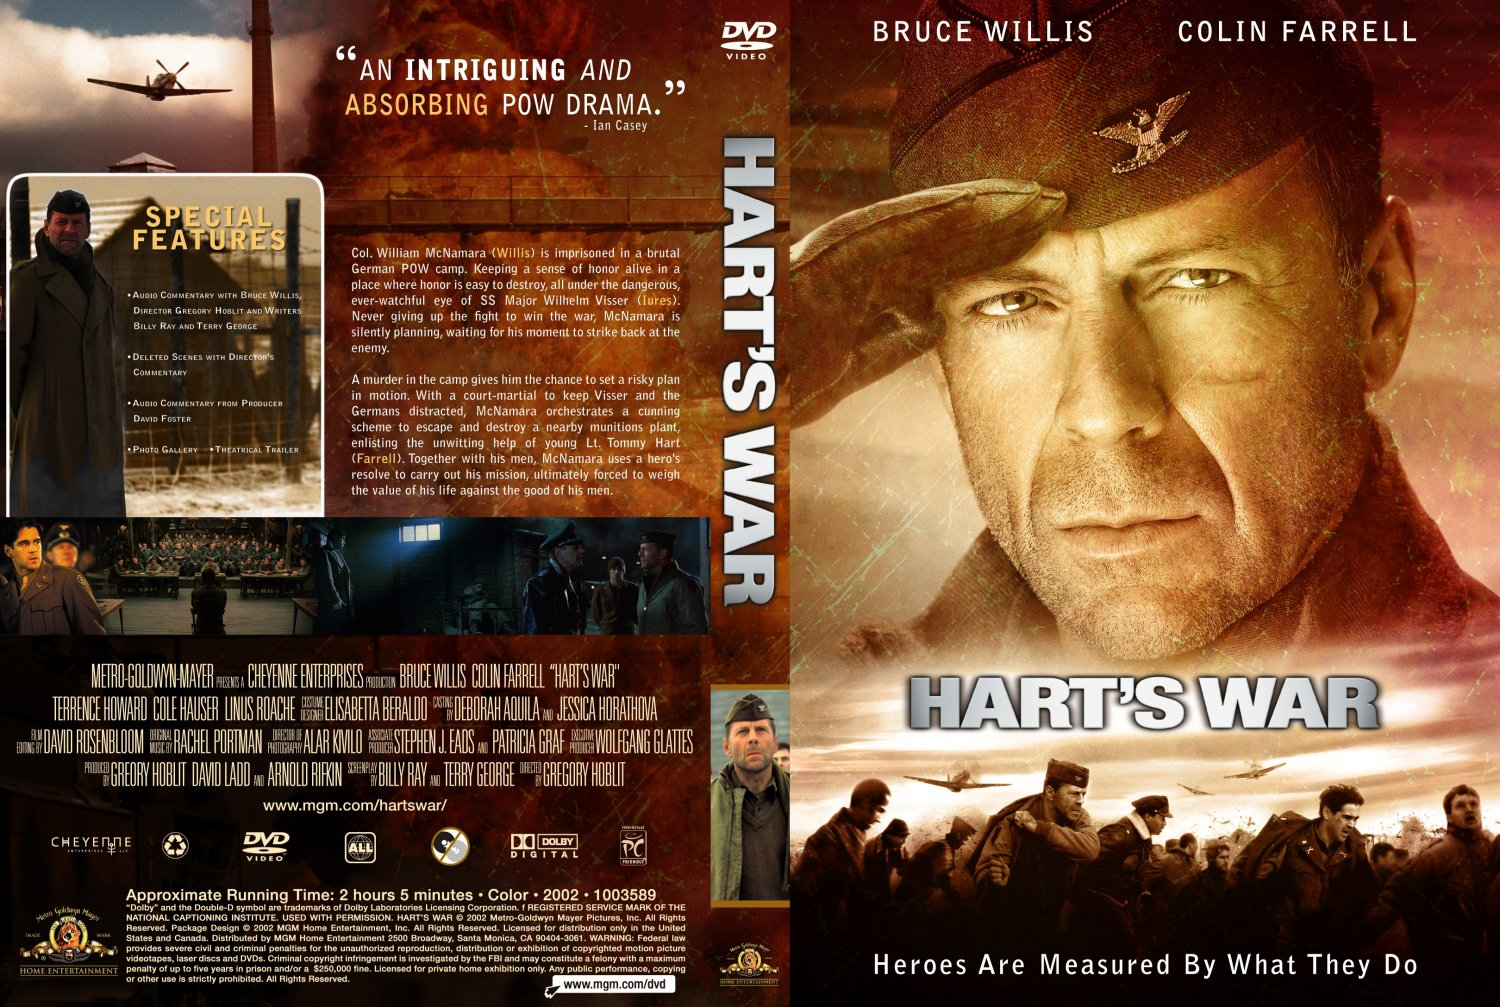 Hart's war - Movie DVD Custom Covers - Harts war :: DVD Covers